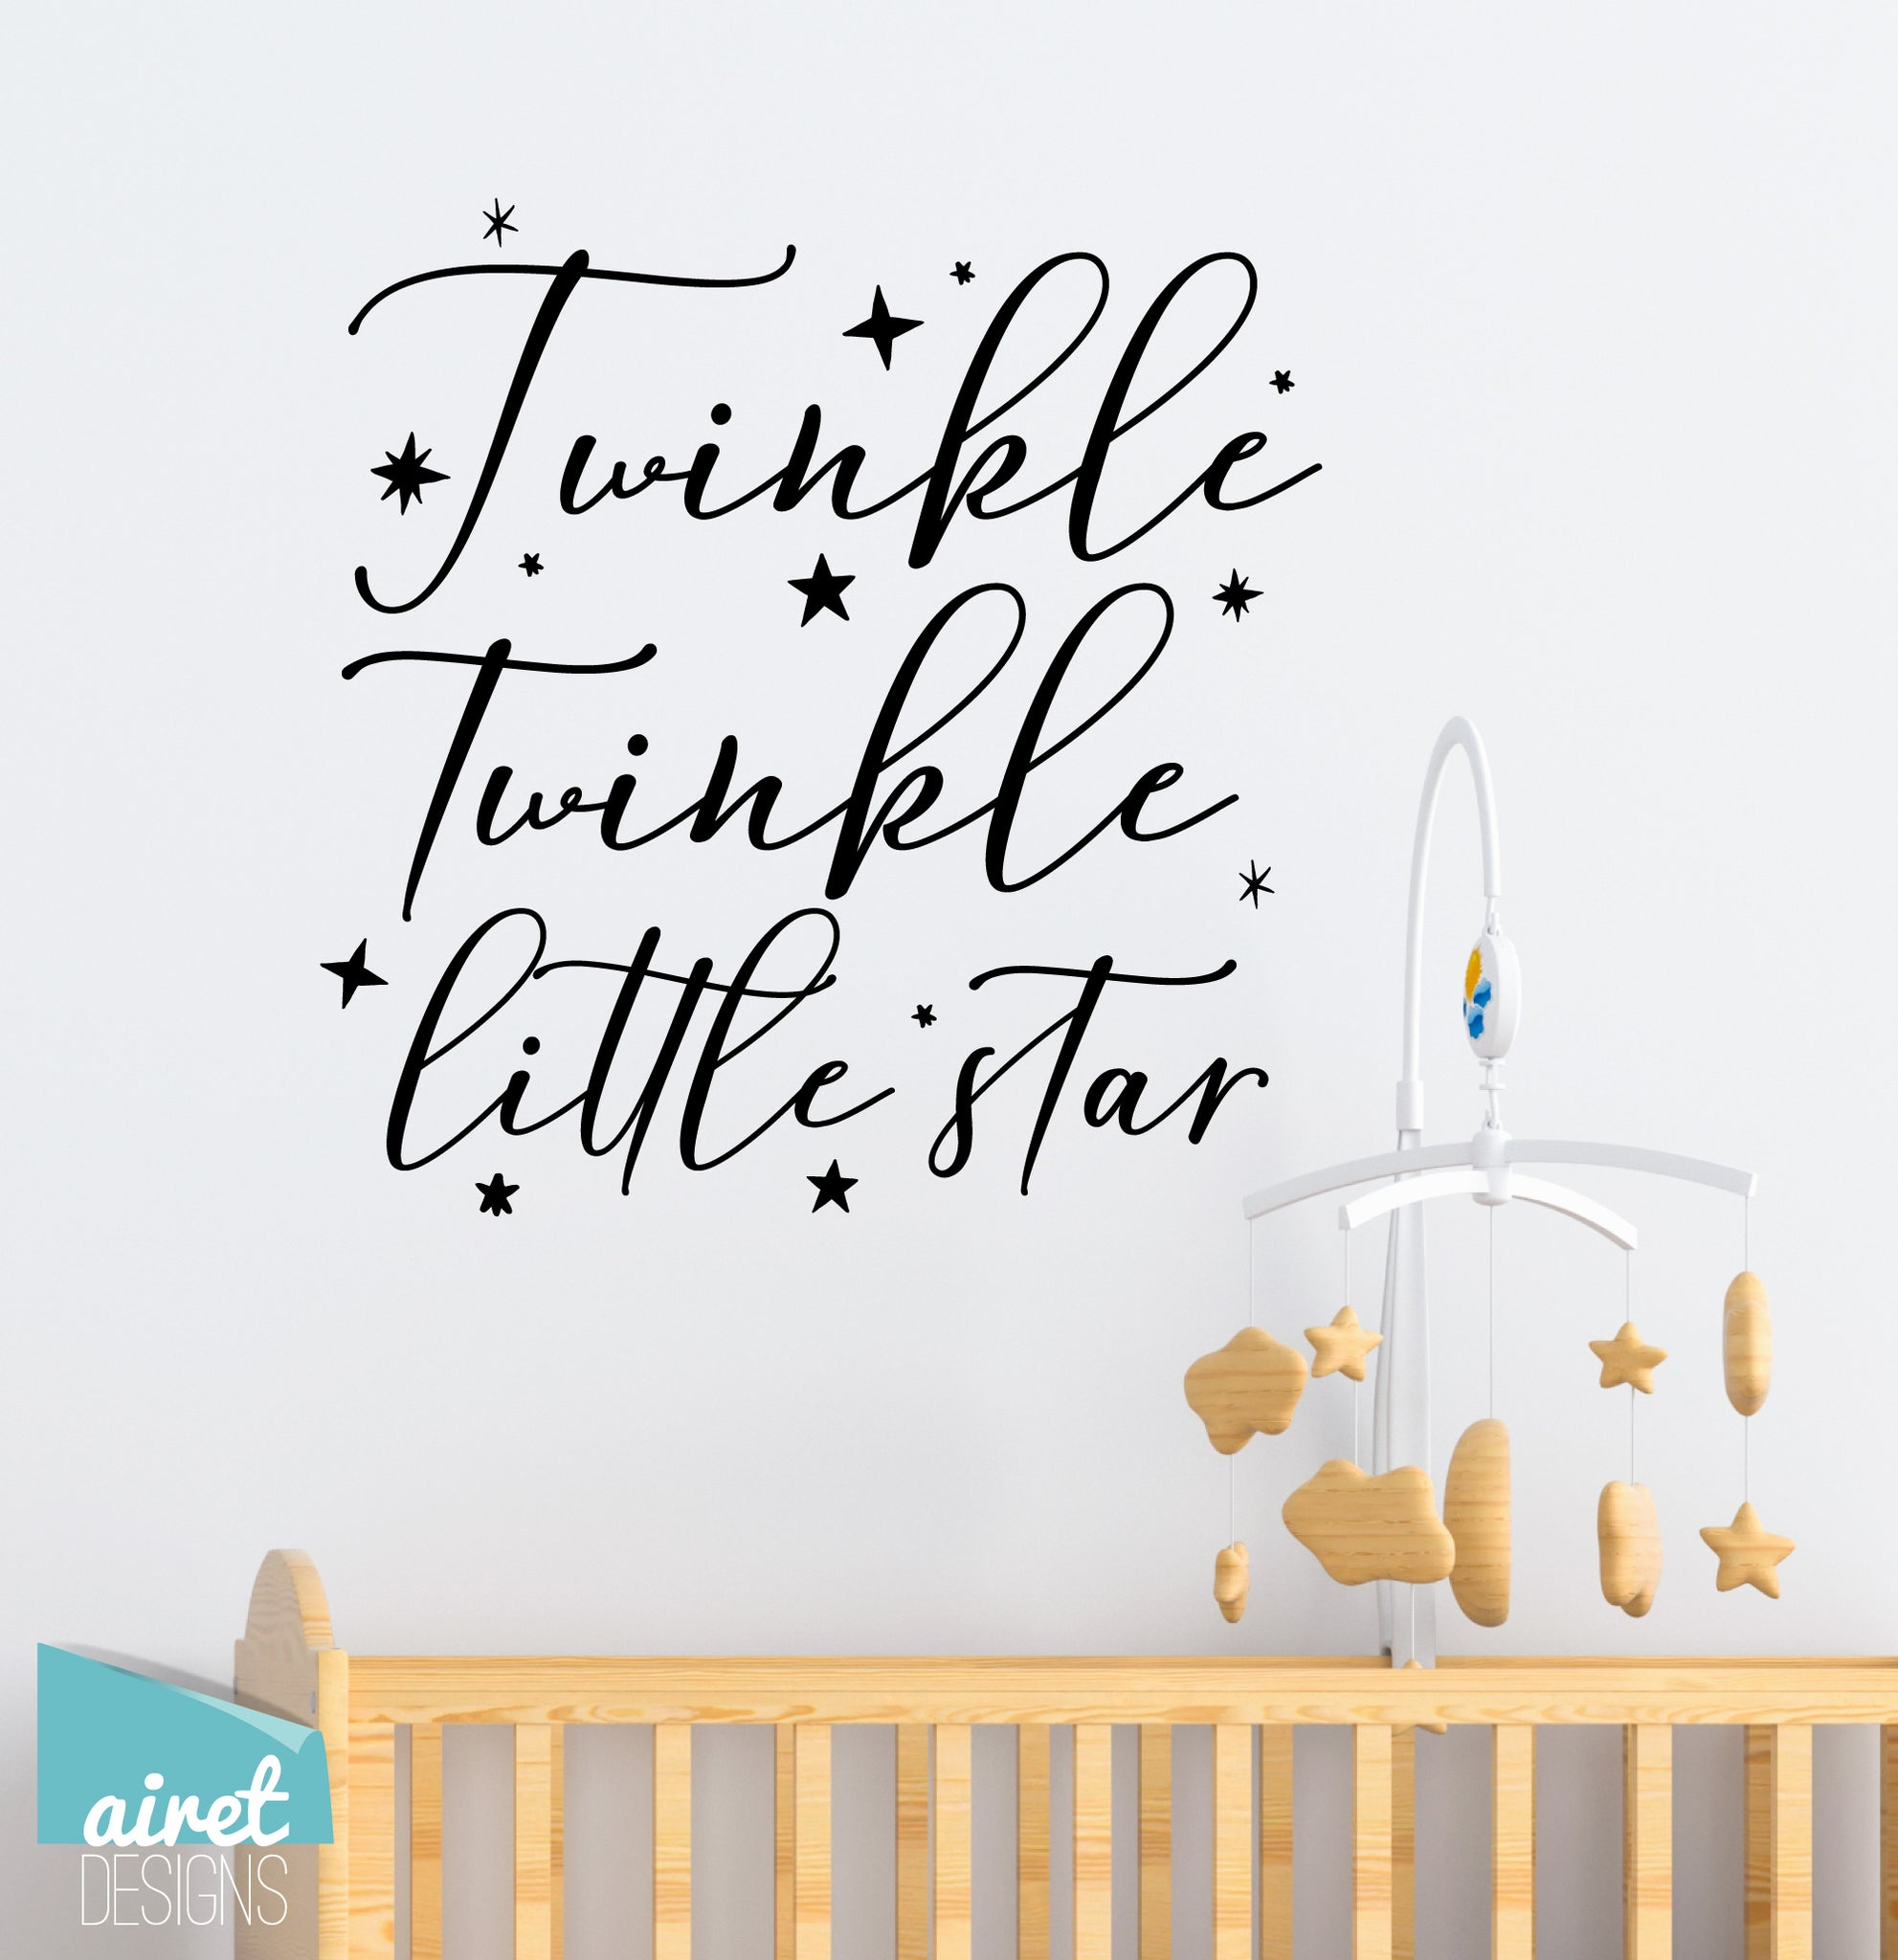 Twinkle Twinkle Little Star - Vinyl Decal Children's Playroom Room Toddler Babies Wall Decor Sticker Sign v3